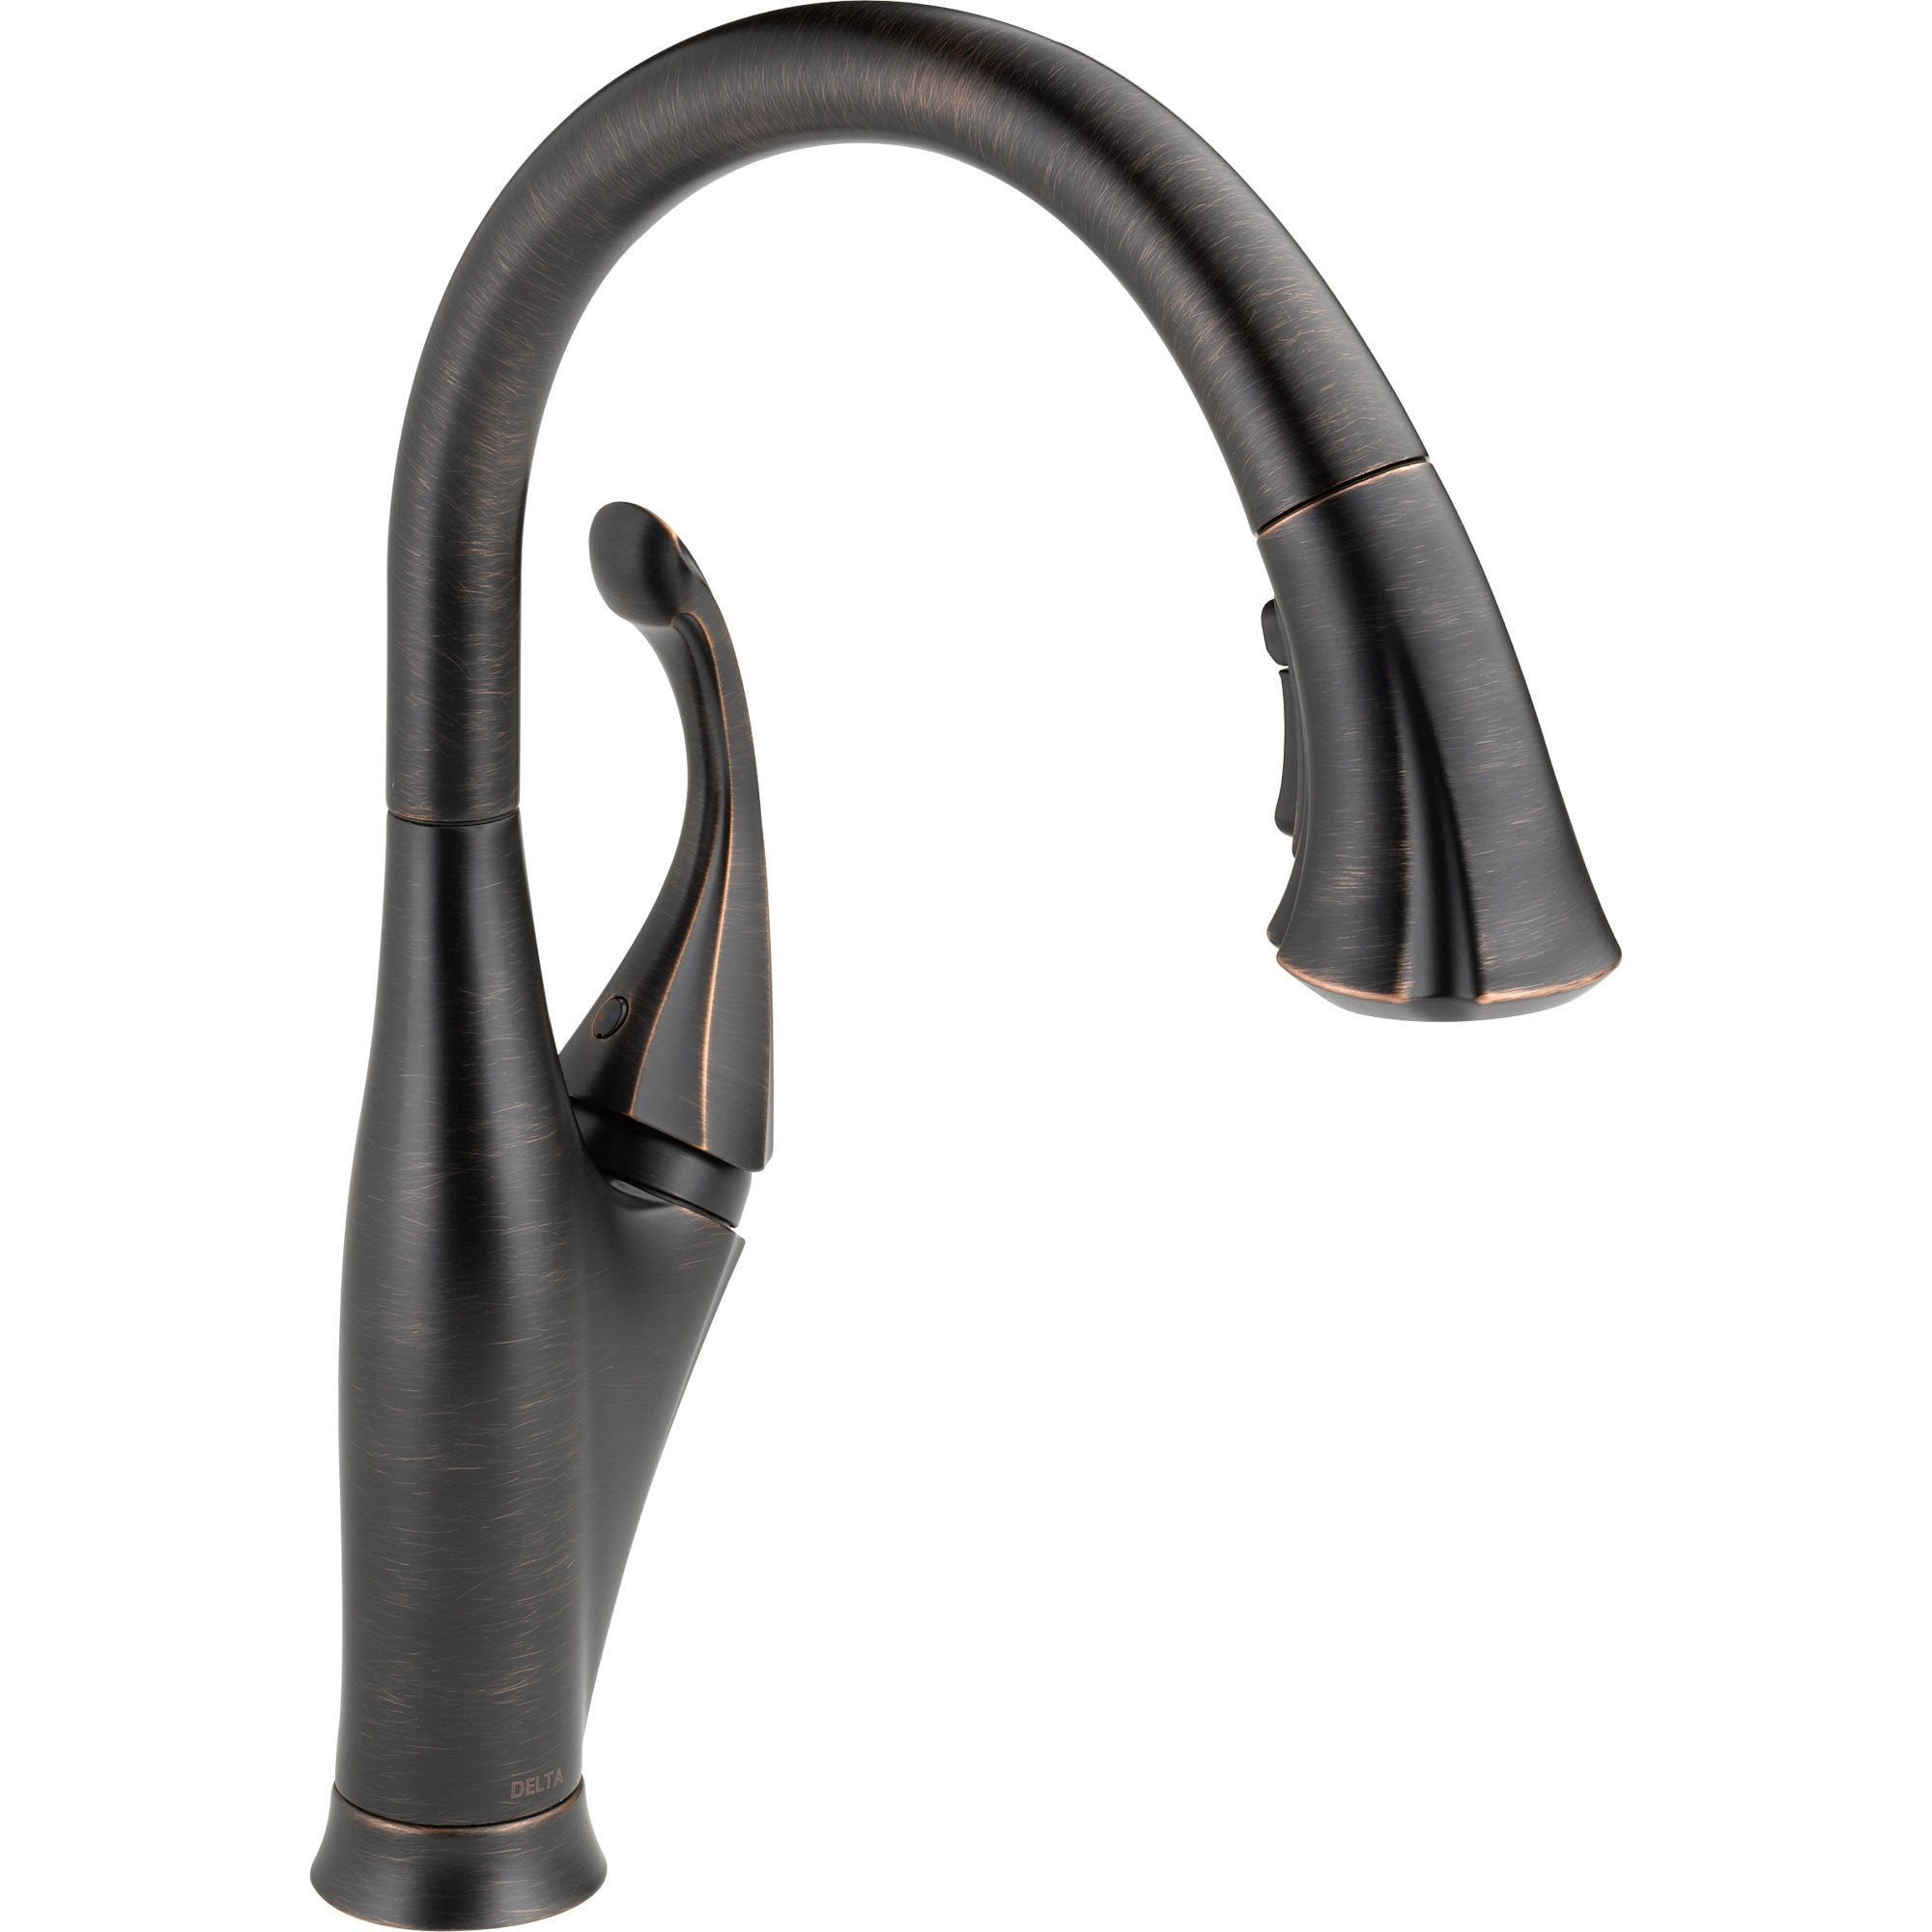 Delta Venetian Bronze Single Handle Pull-Down Spray Kitchen Faucet 521976